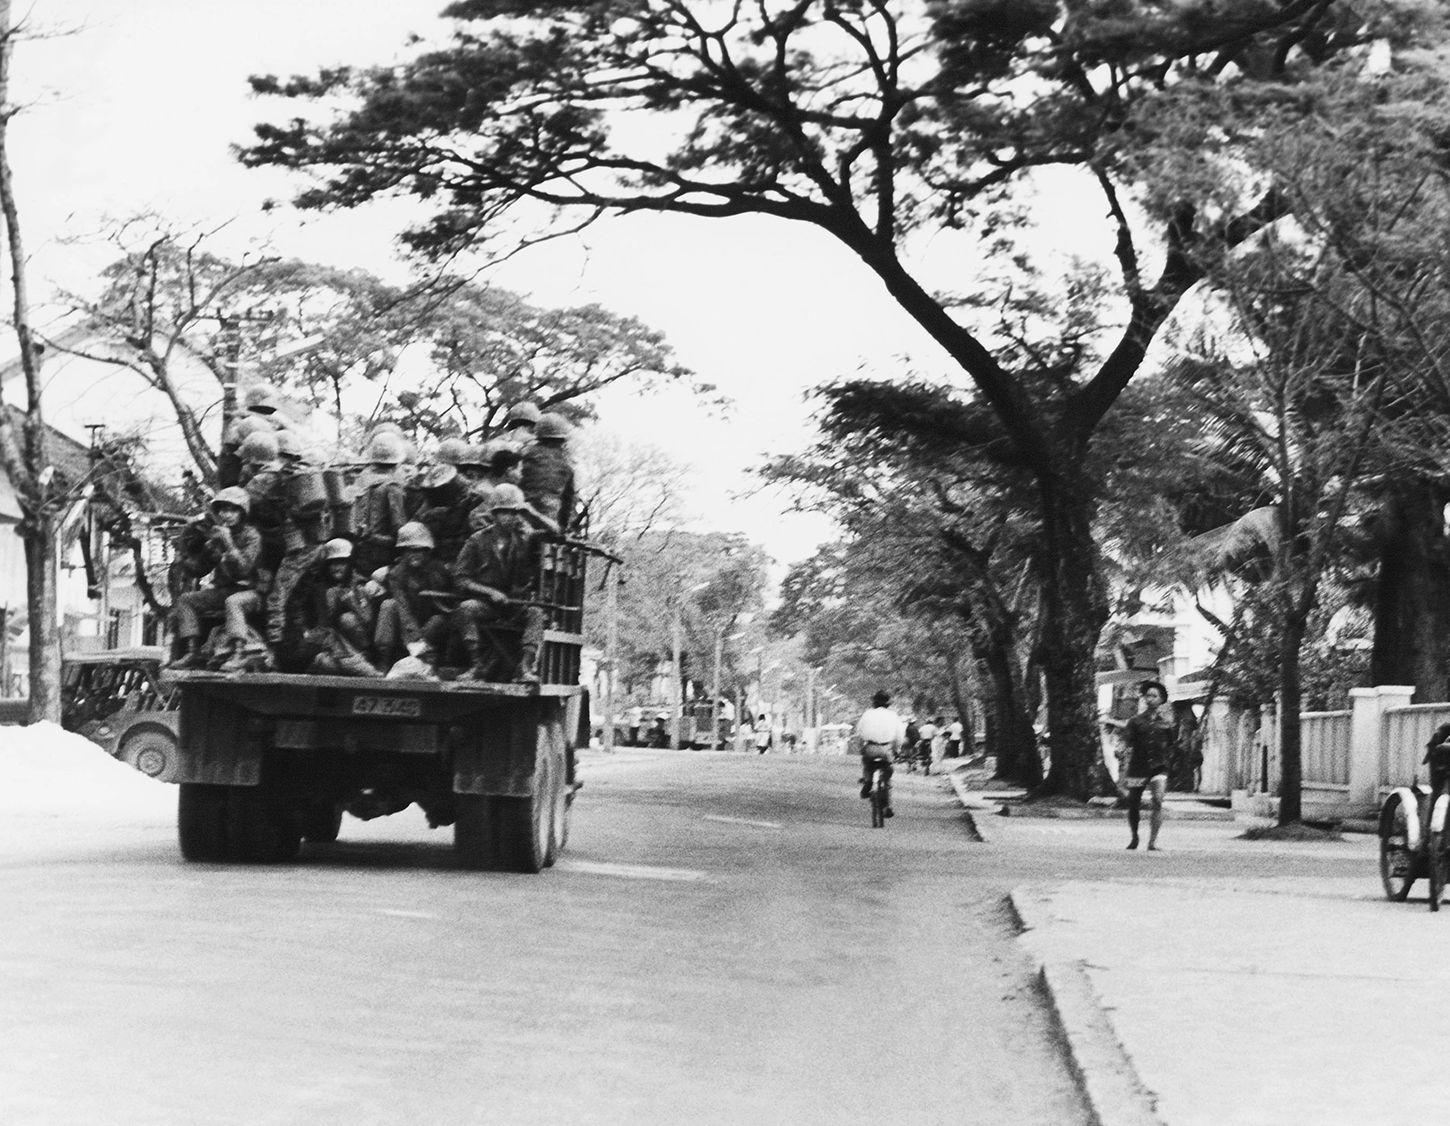 A truckload of Vietnamese soldiers loyal to then-Premier Ky moves through a Danang street, May 15, 1966. An airlift brought some 2,500 troops to take control of radio station, city hall and other strategic areas.